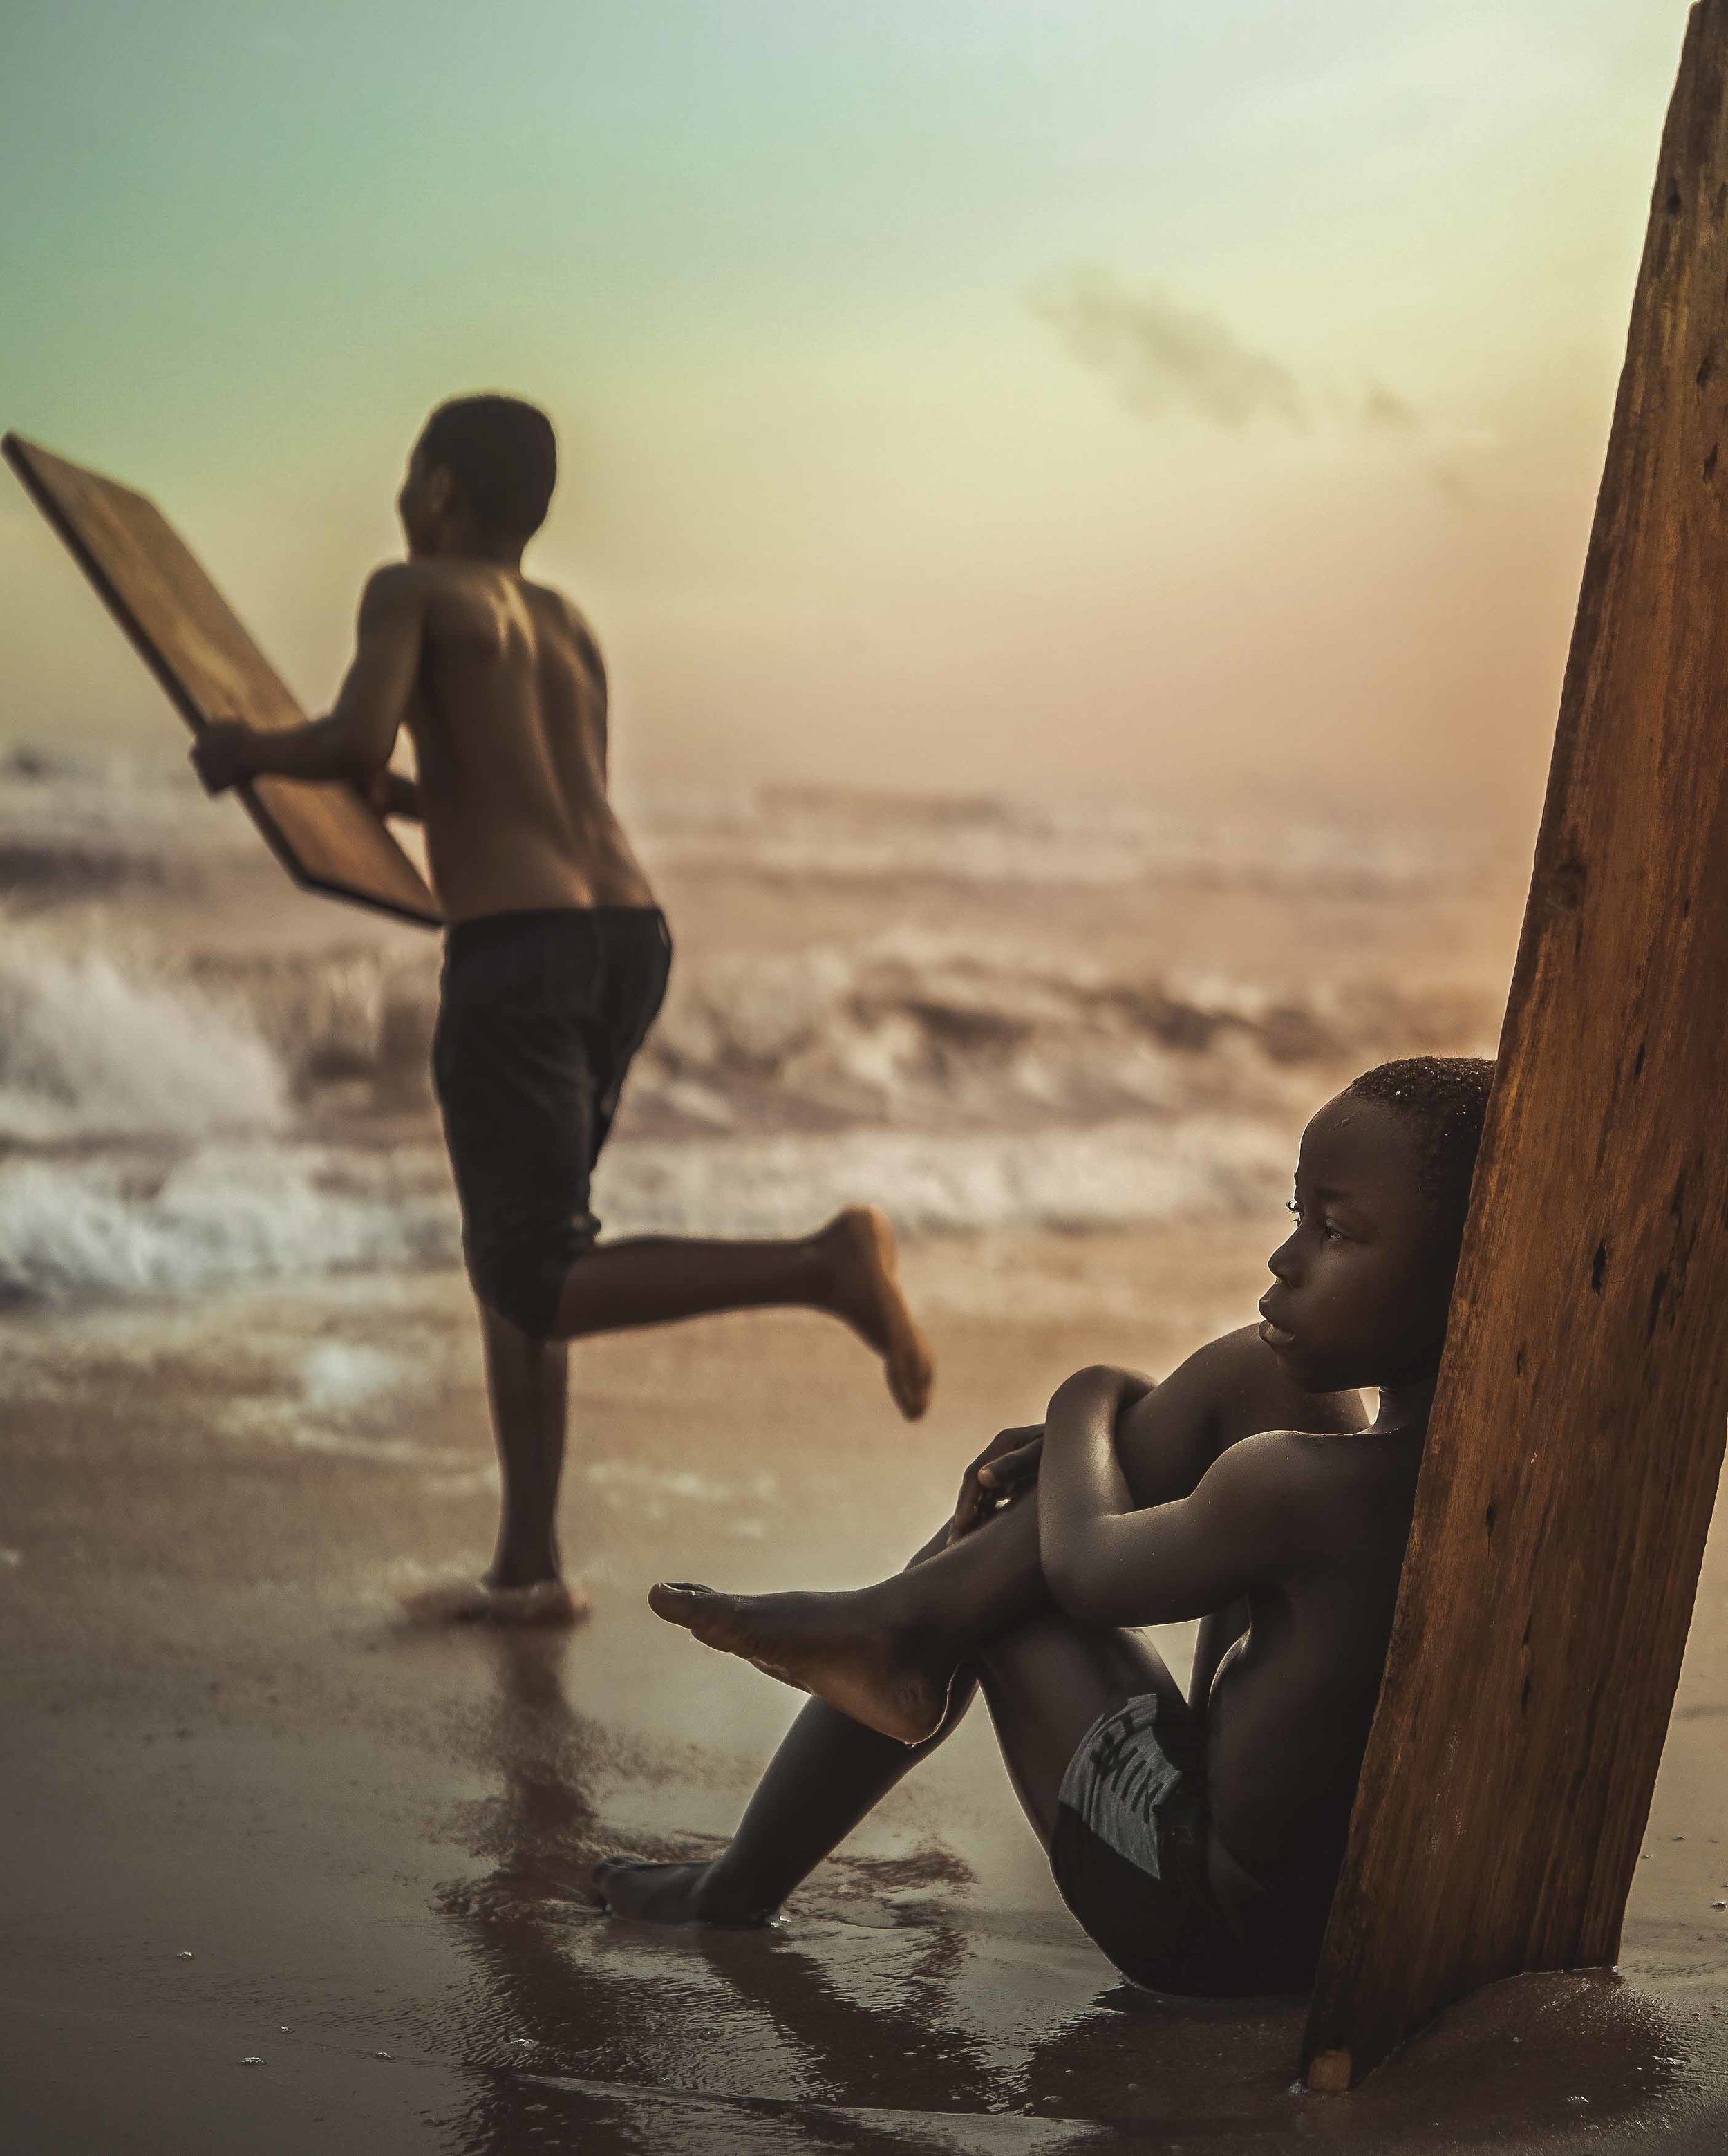 "I don't wish for something more, but I hope to find those open doors. So I'll be on my way running through the water, for i know there is something for me out in the cold. .  ""Gone Surfing"" by Michael Aboya @aboya.8"